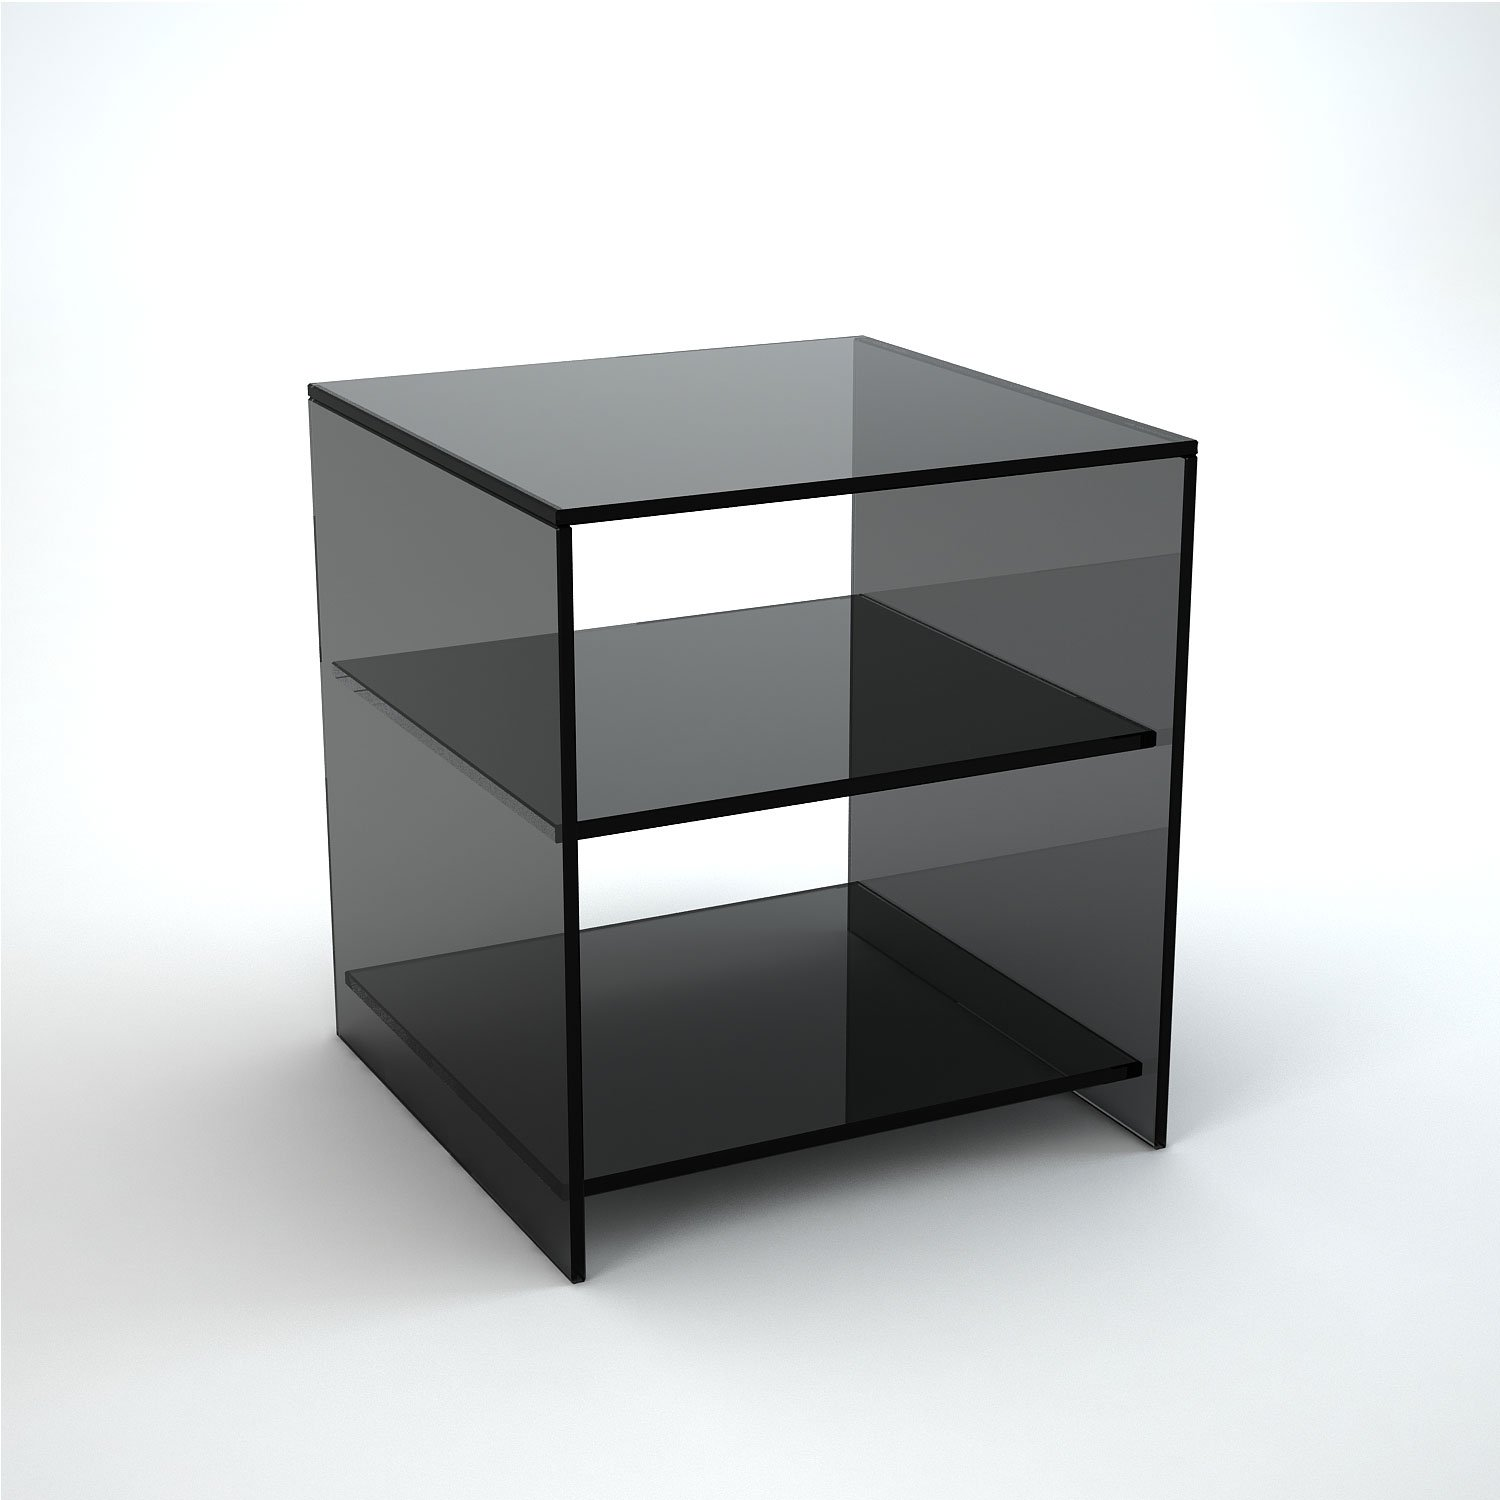 Judd Smoked Glass Side Table With Shelves Klarity